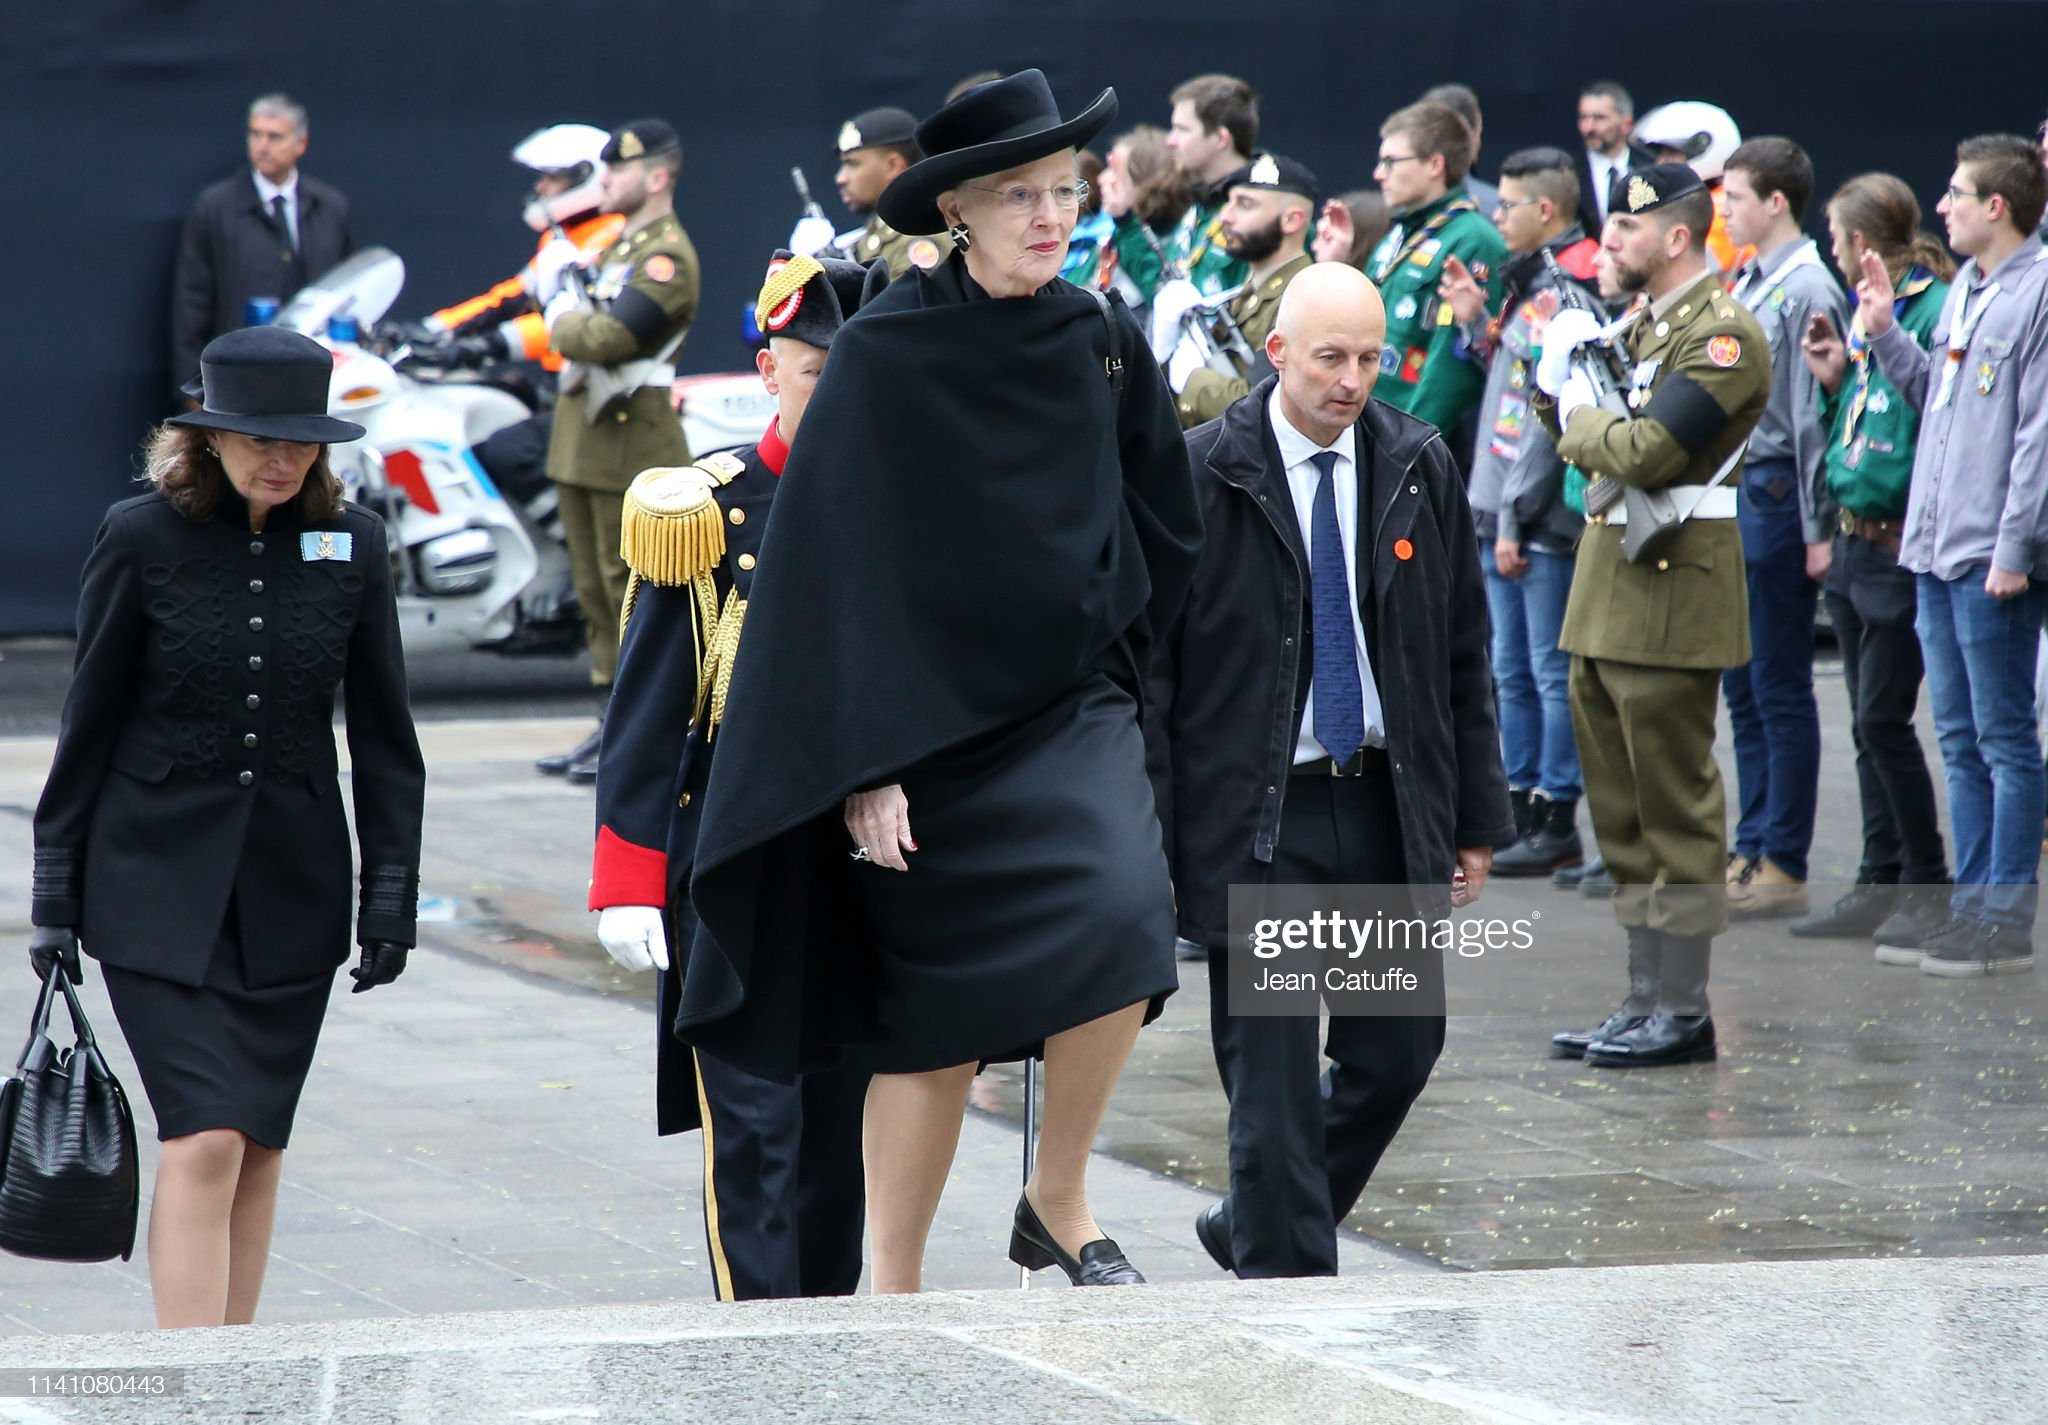 Похороны Великого Герцога Жана https://media.gettyimages.com/photos/queen-margrethe-ii-of-denmark-arrives-for-the-funeral-of-grand-duke-picture-id1141080443?s=2048x2048